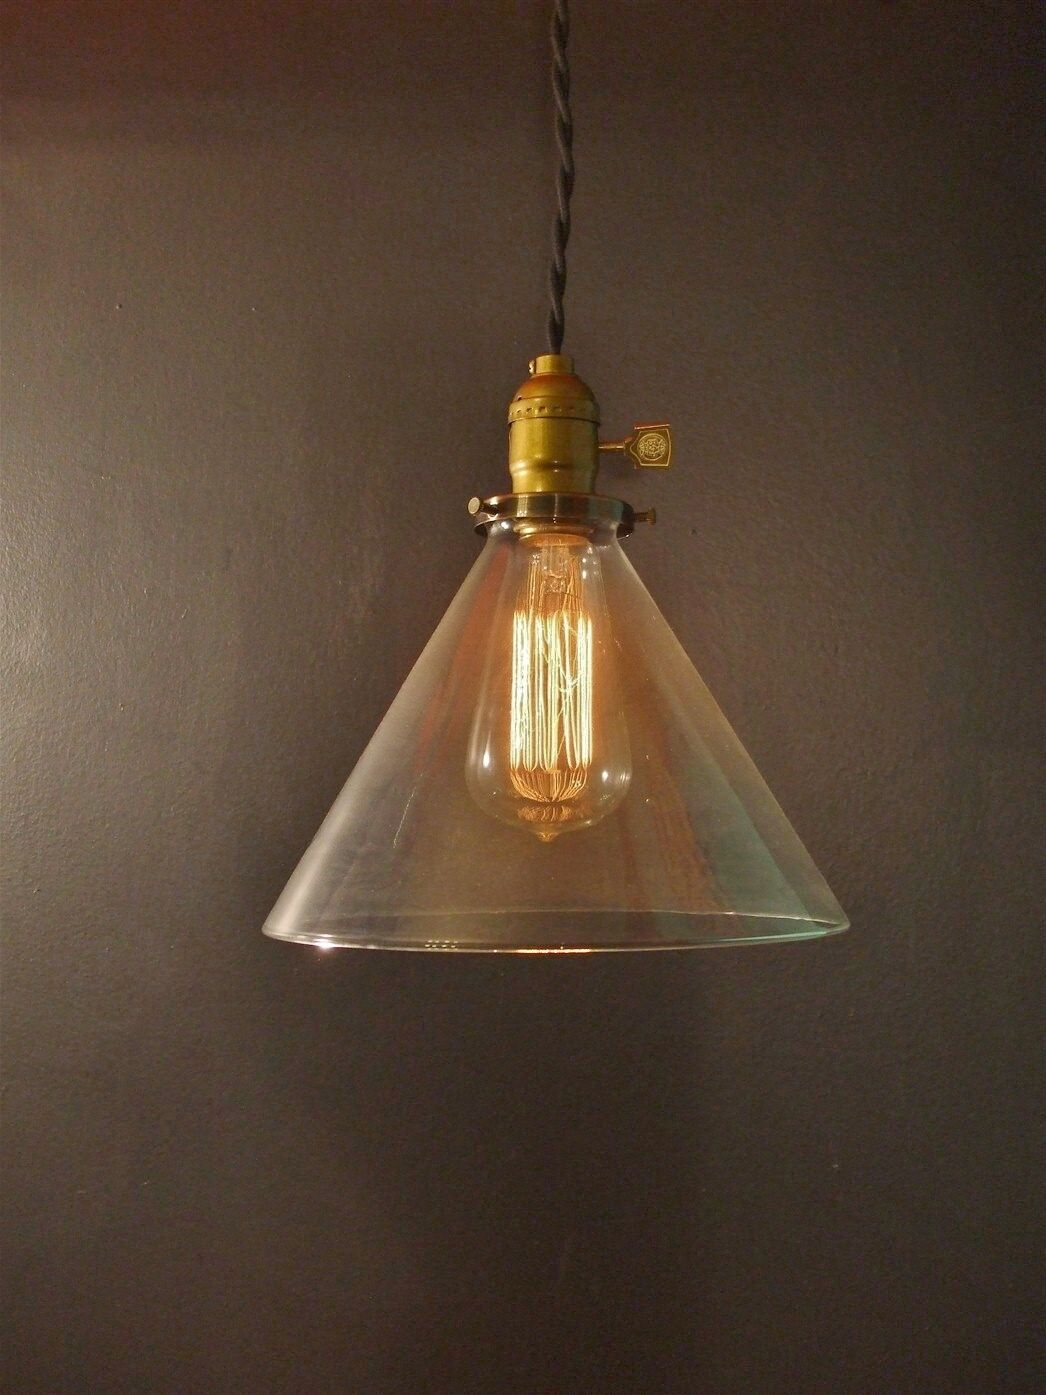 Vintage Industrial Hanging Light with Glass Cone Shade